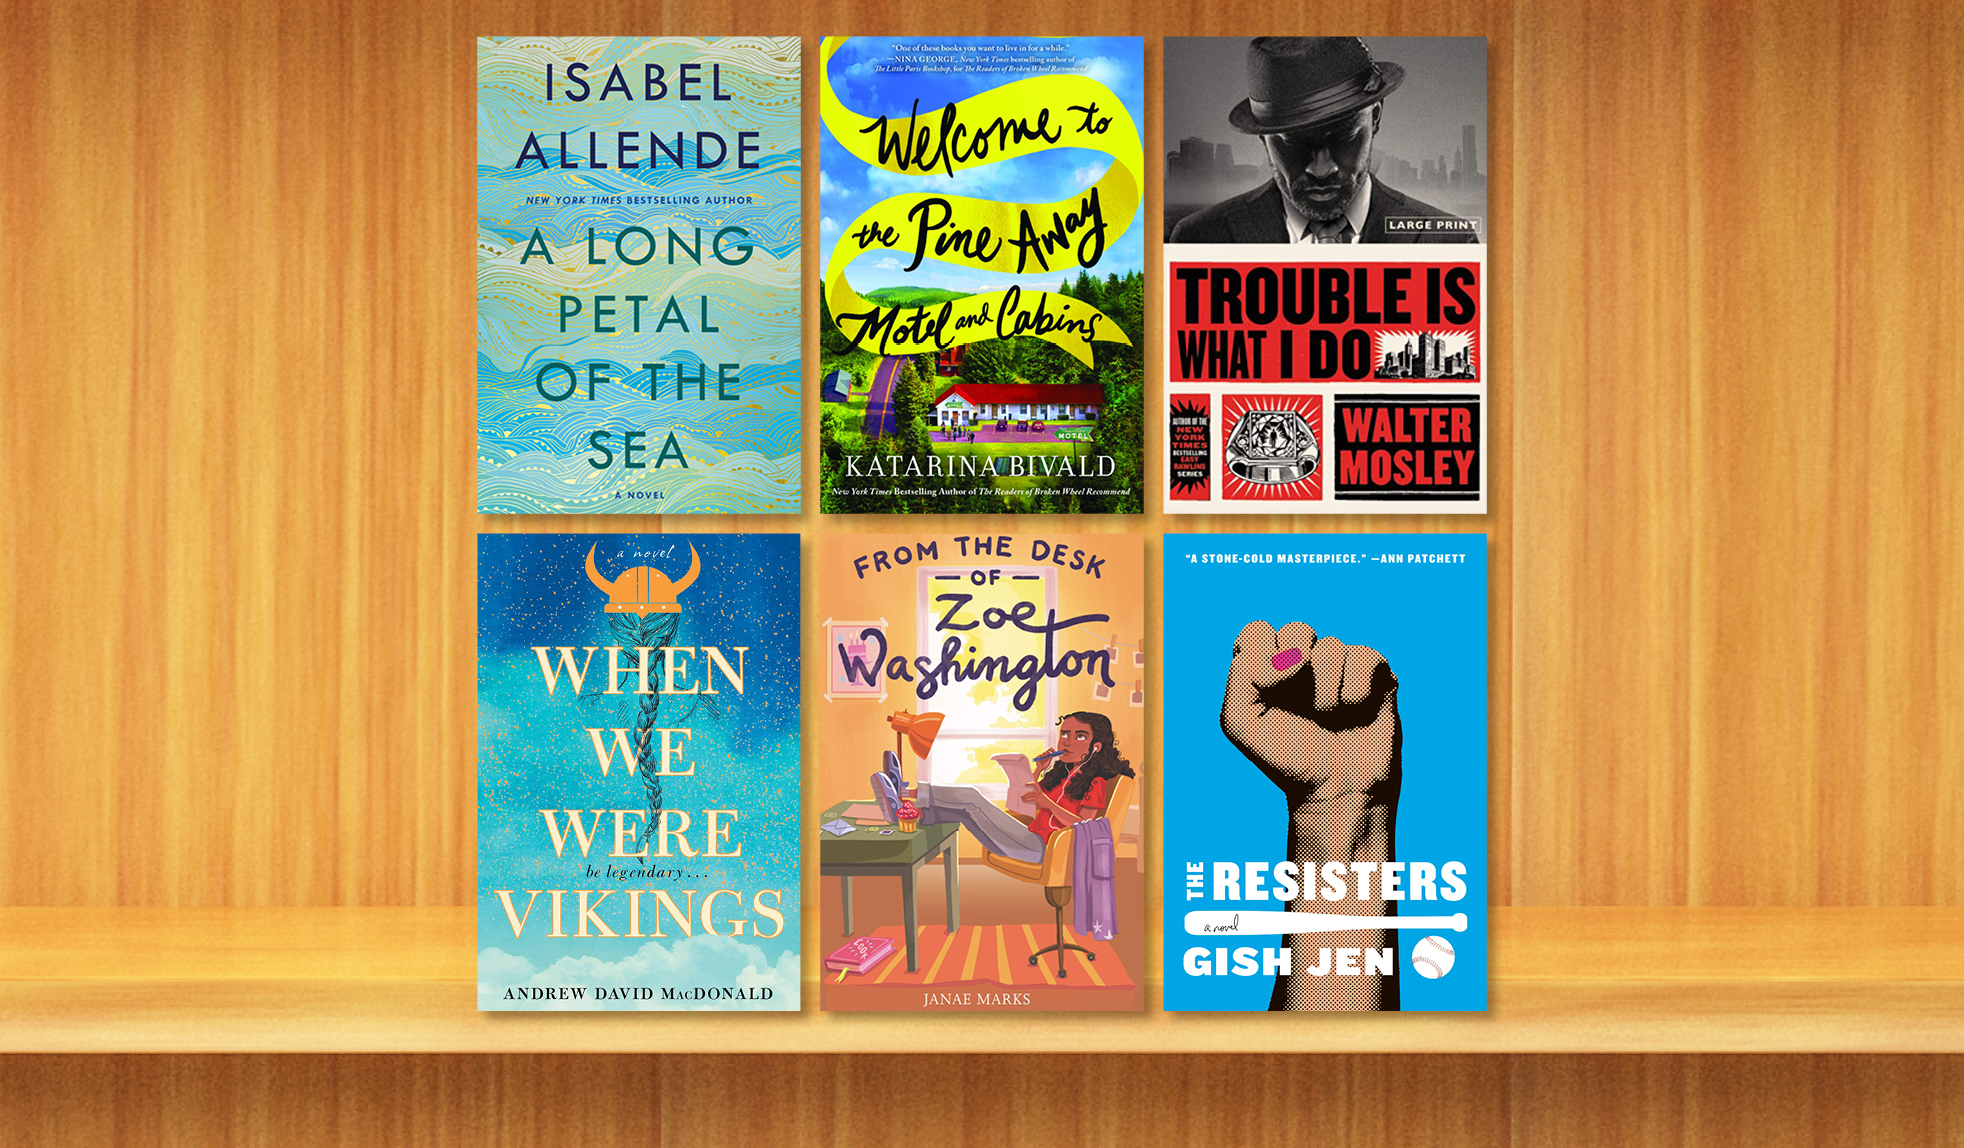 Enjoy new works from Isabel Allende, Walter Mosley, and more.